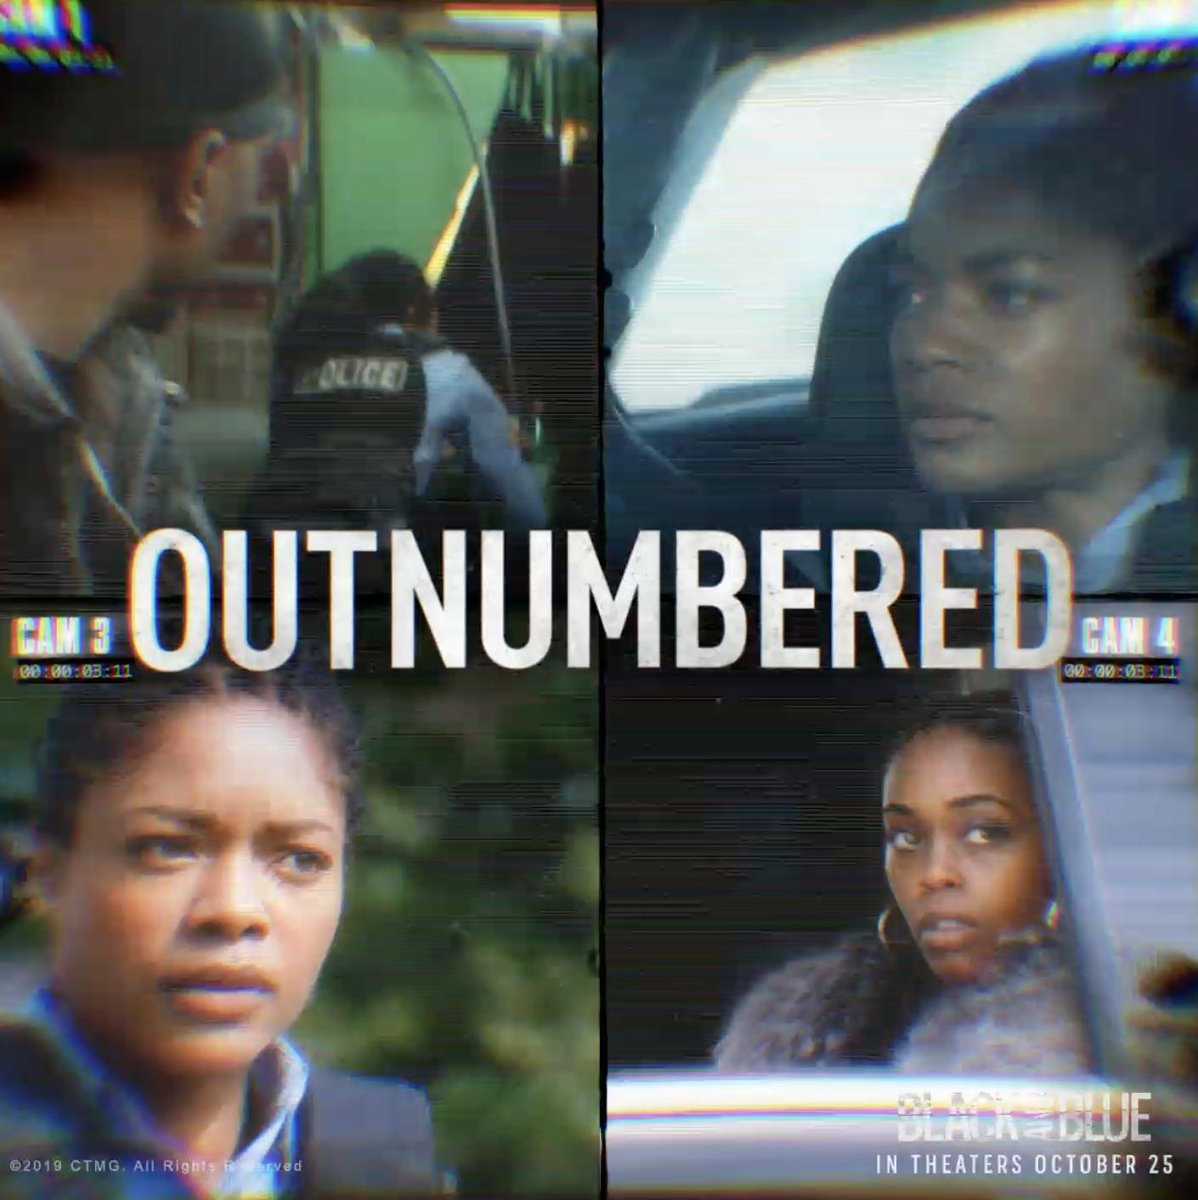 Outrun. Outnumbered. Outlast. @BlackBlueMovie - in theaters October 25th.